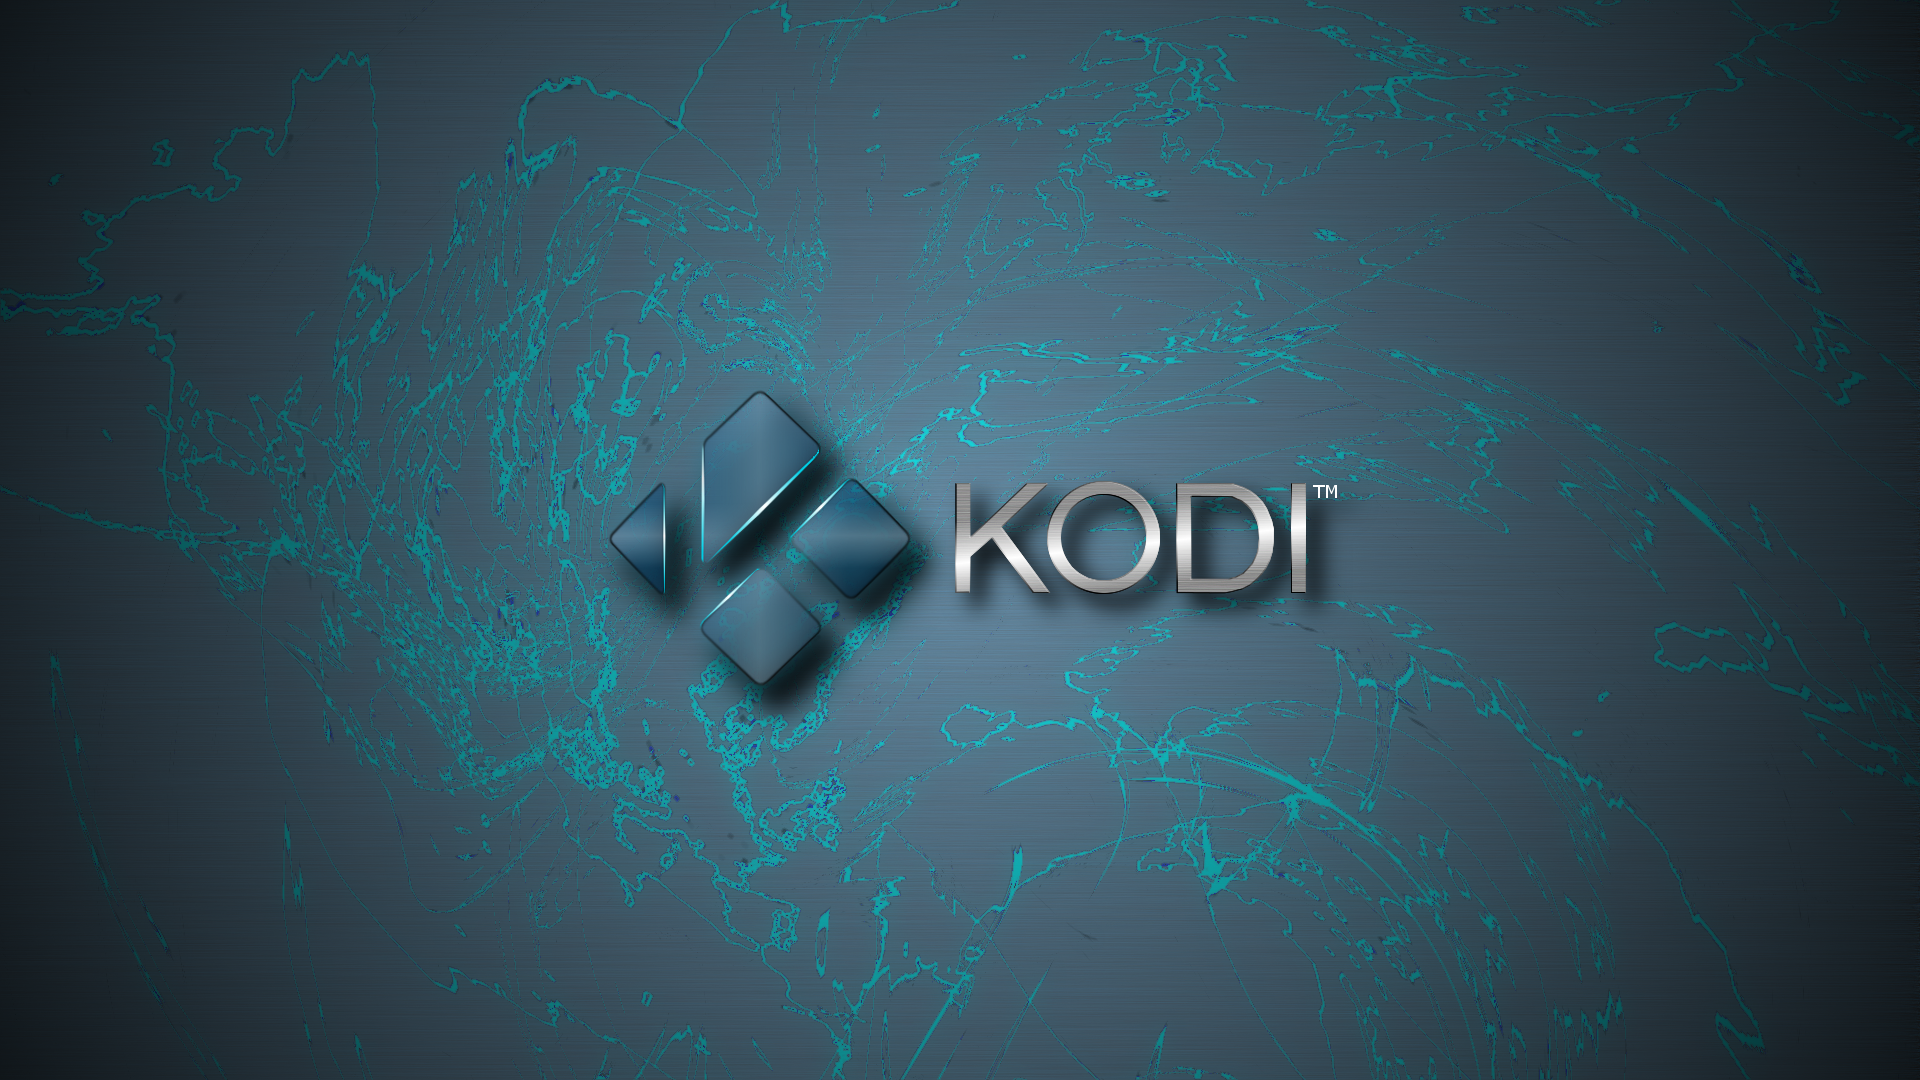 Kodi fanart and wallpaper -  Image 16257070294_4da837efe6_o Png